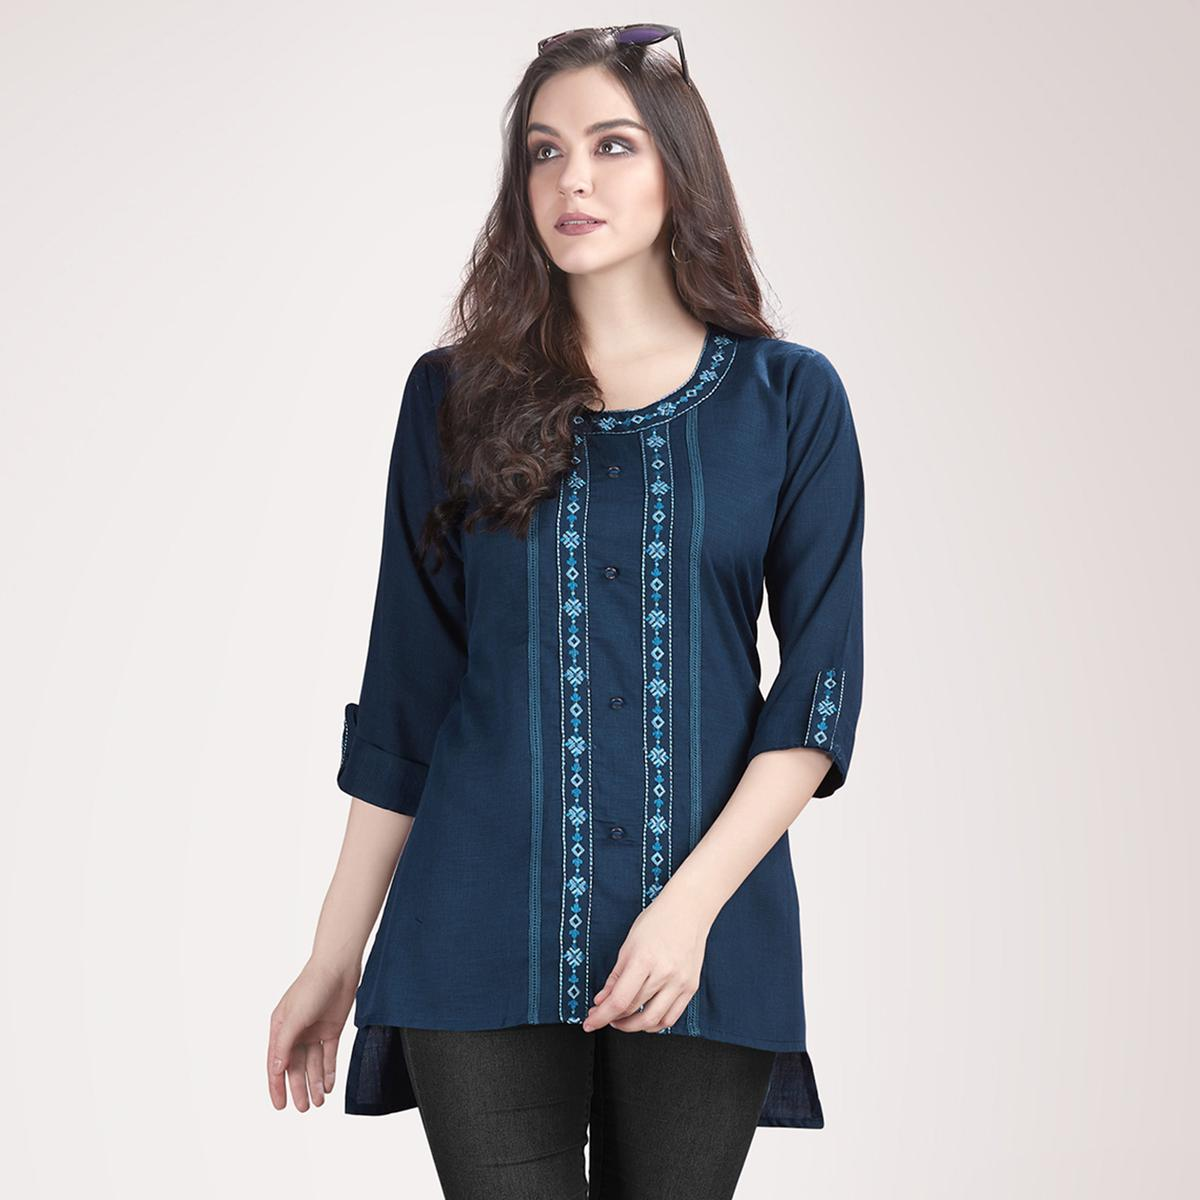 Ravishing Steel Blue Colored Partywear Embroidered Rayon Western Top